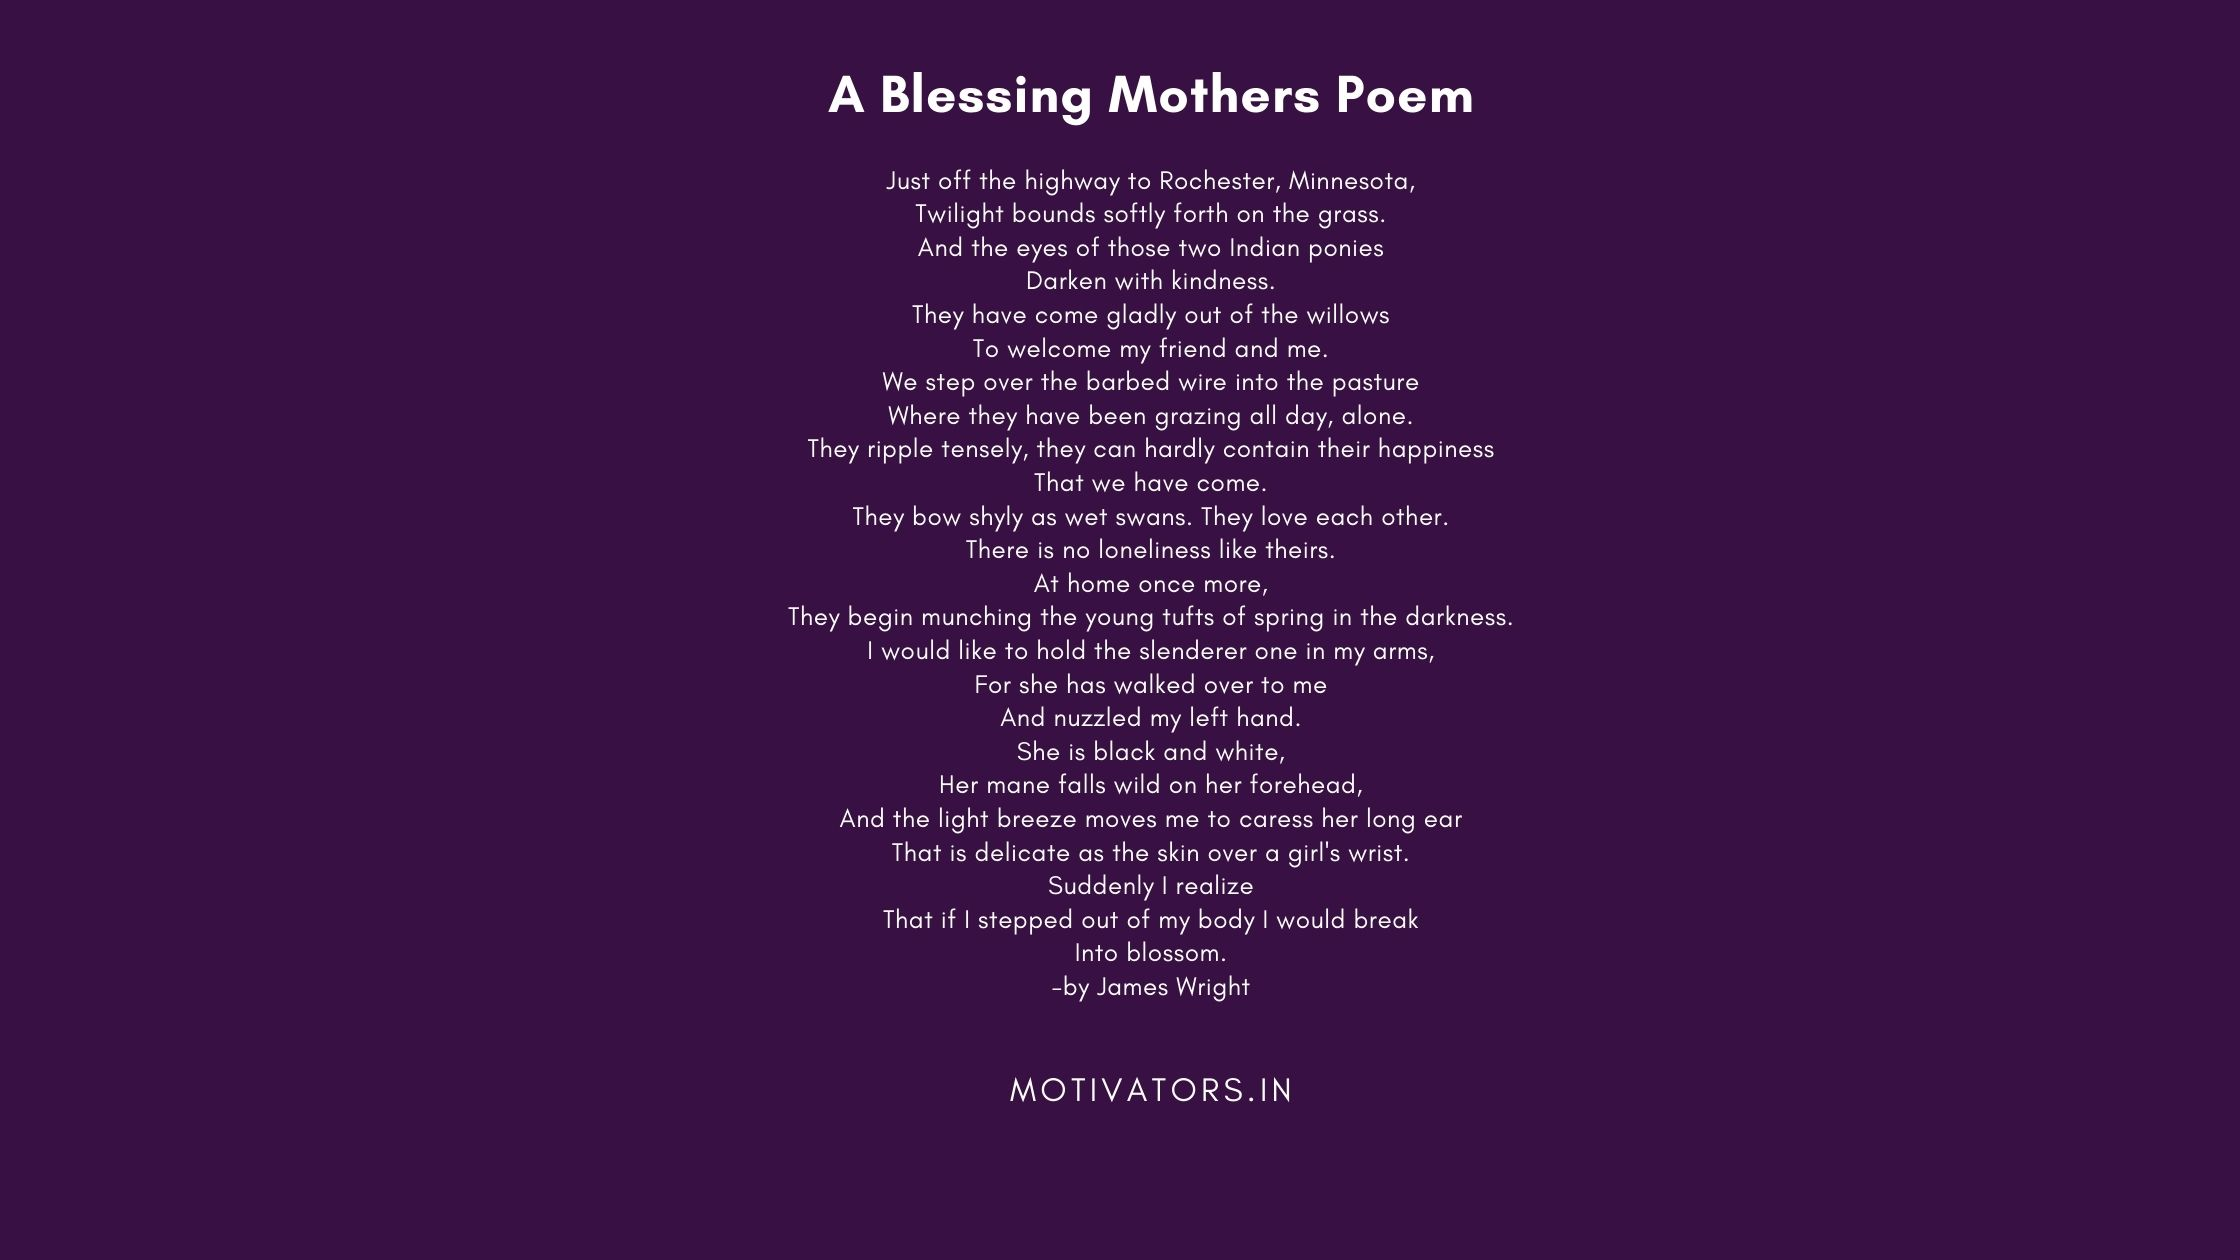 A Blessing Mothers Poem